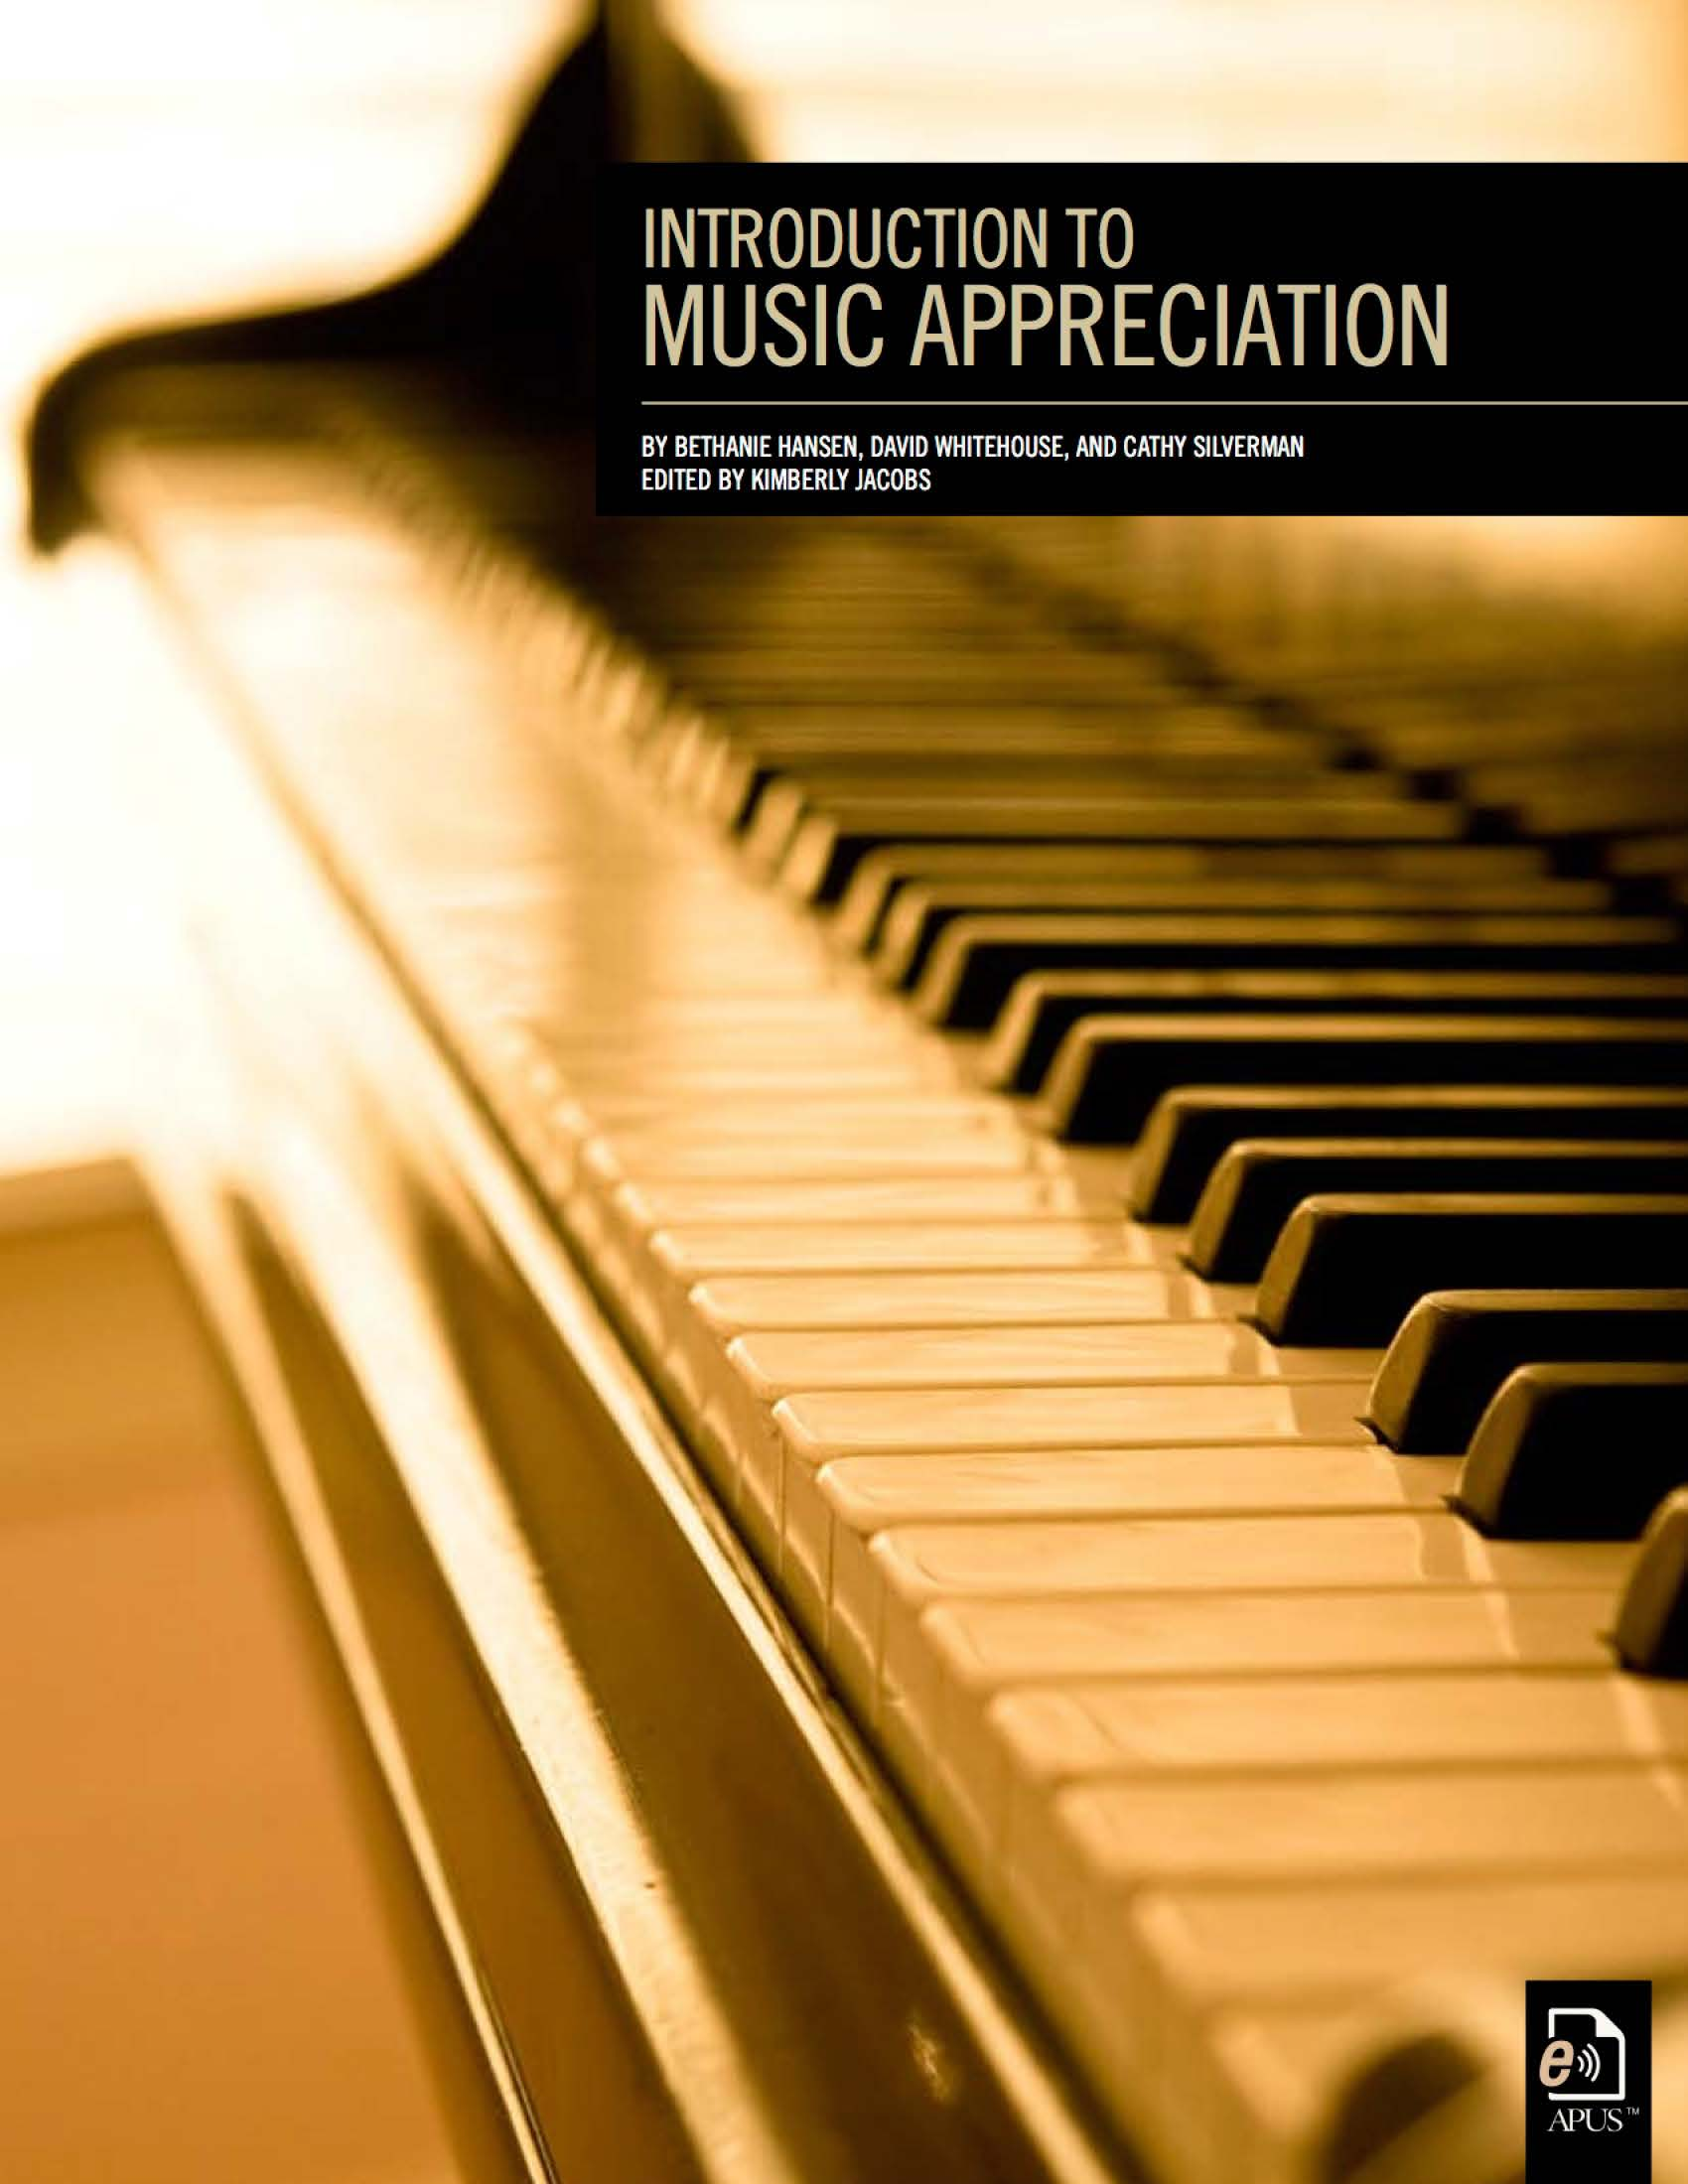 The cover of Introduction to Music Appreciation features a sepia-toned photo of a piano keyboard.